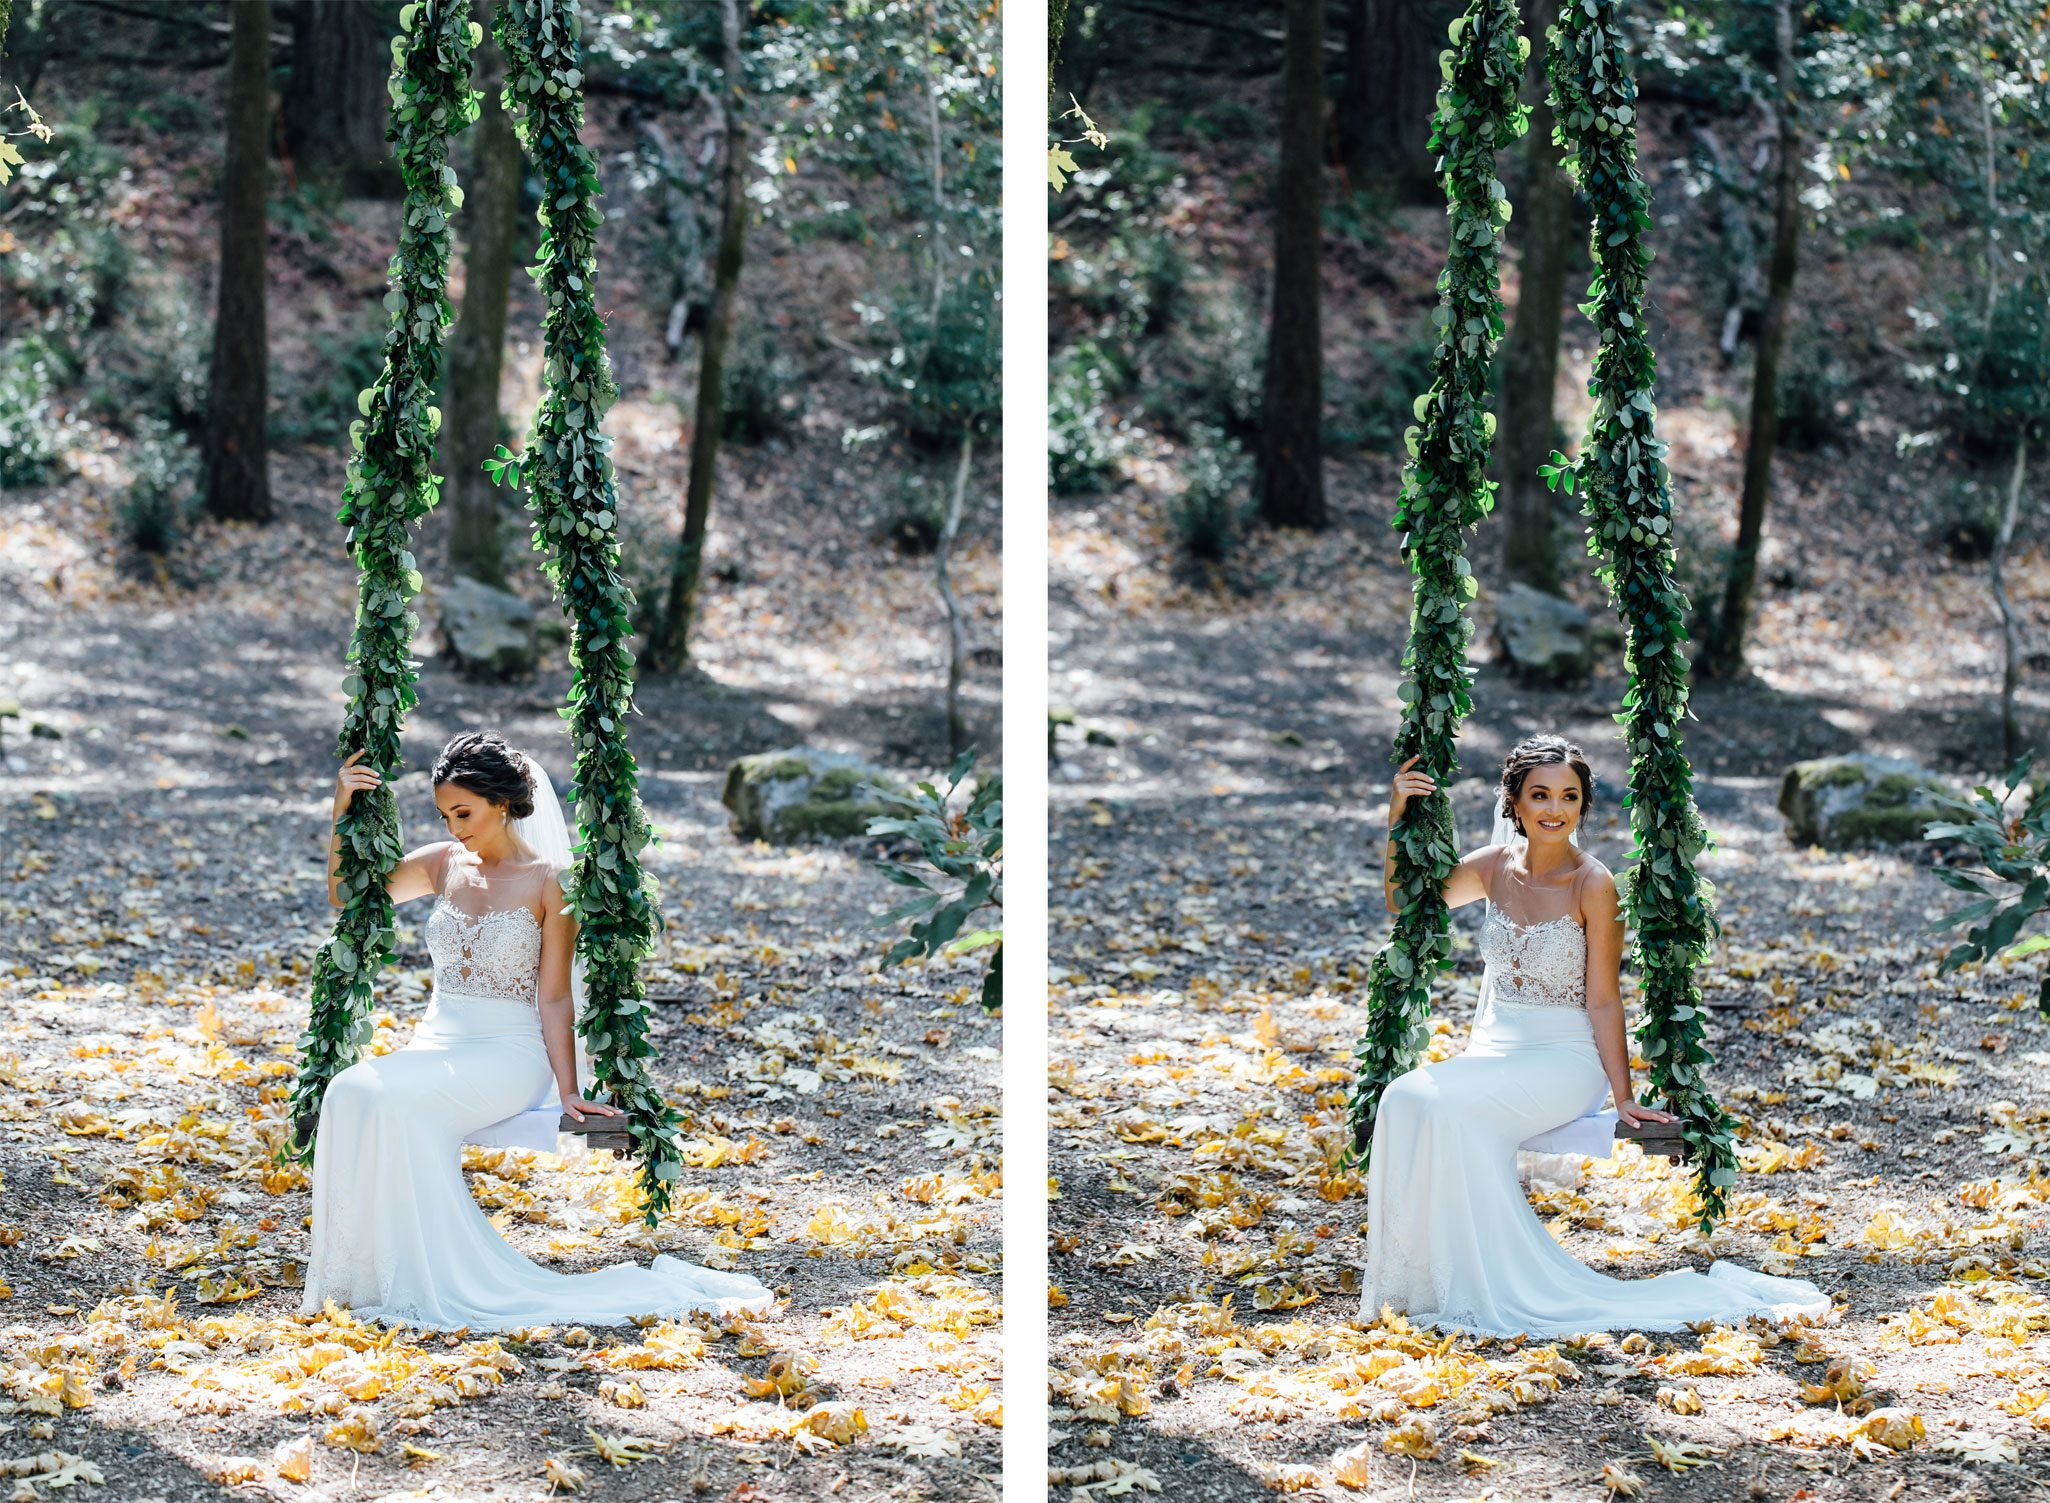 Bride on floral covered swing from a Romantic Backyard Wedding in Wine Country, Napa Valley California